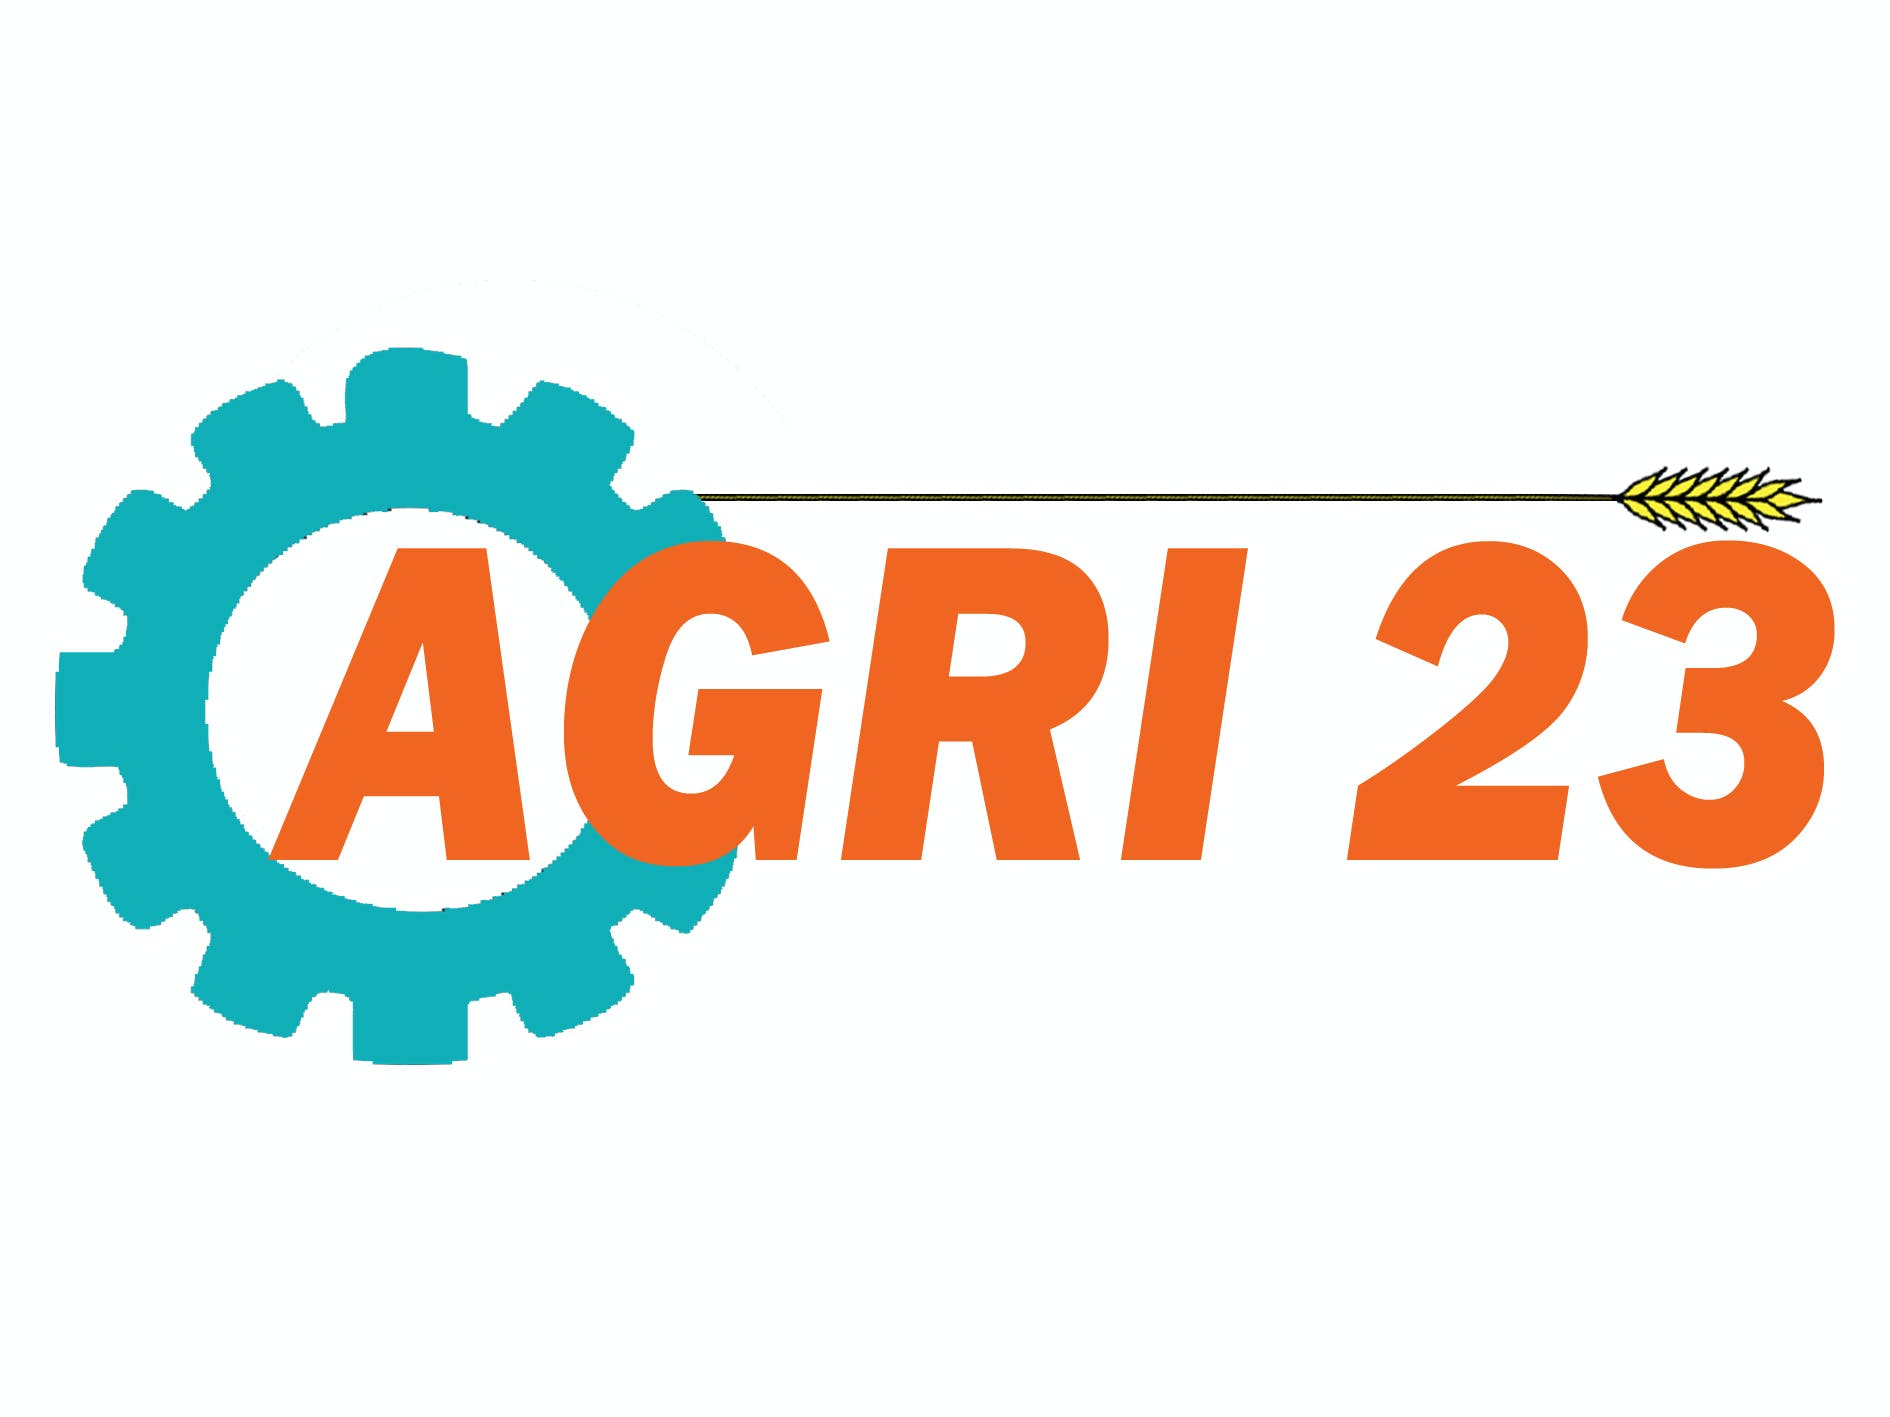 Company logo for 'AGRI 23'.